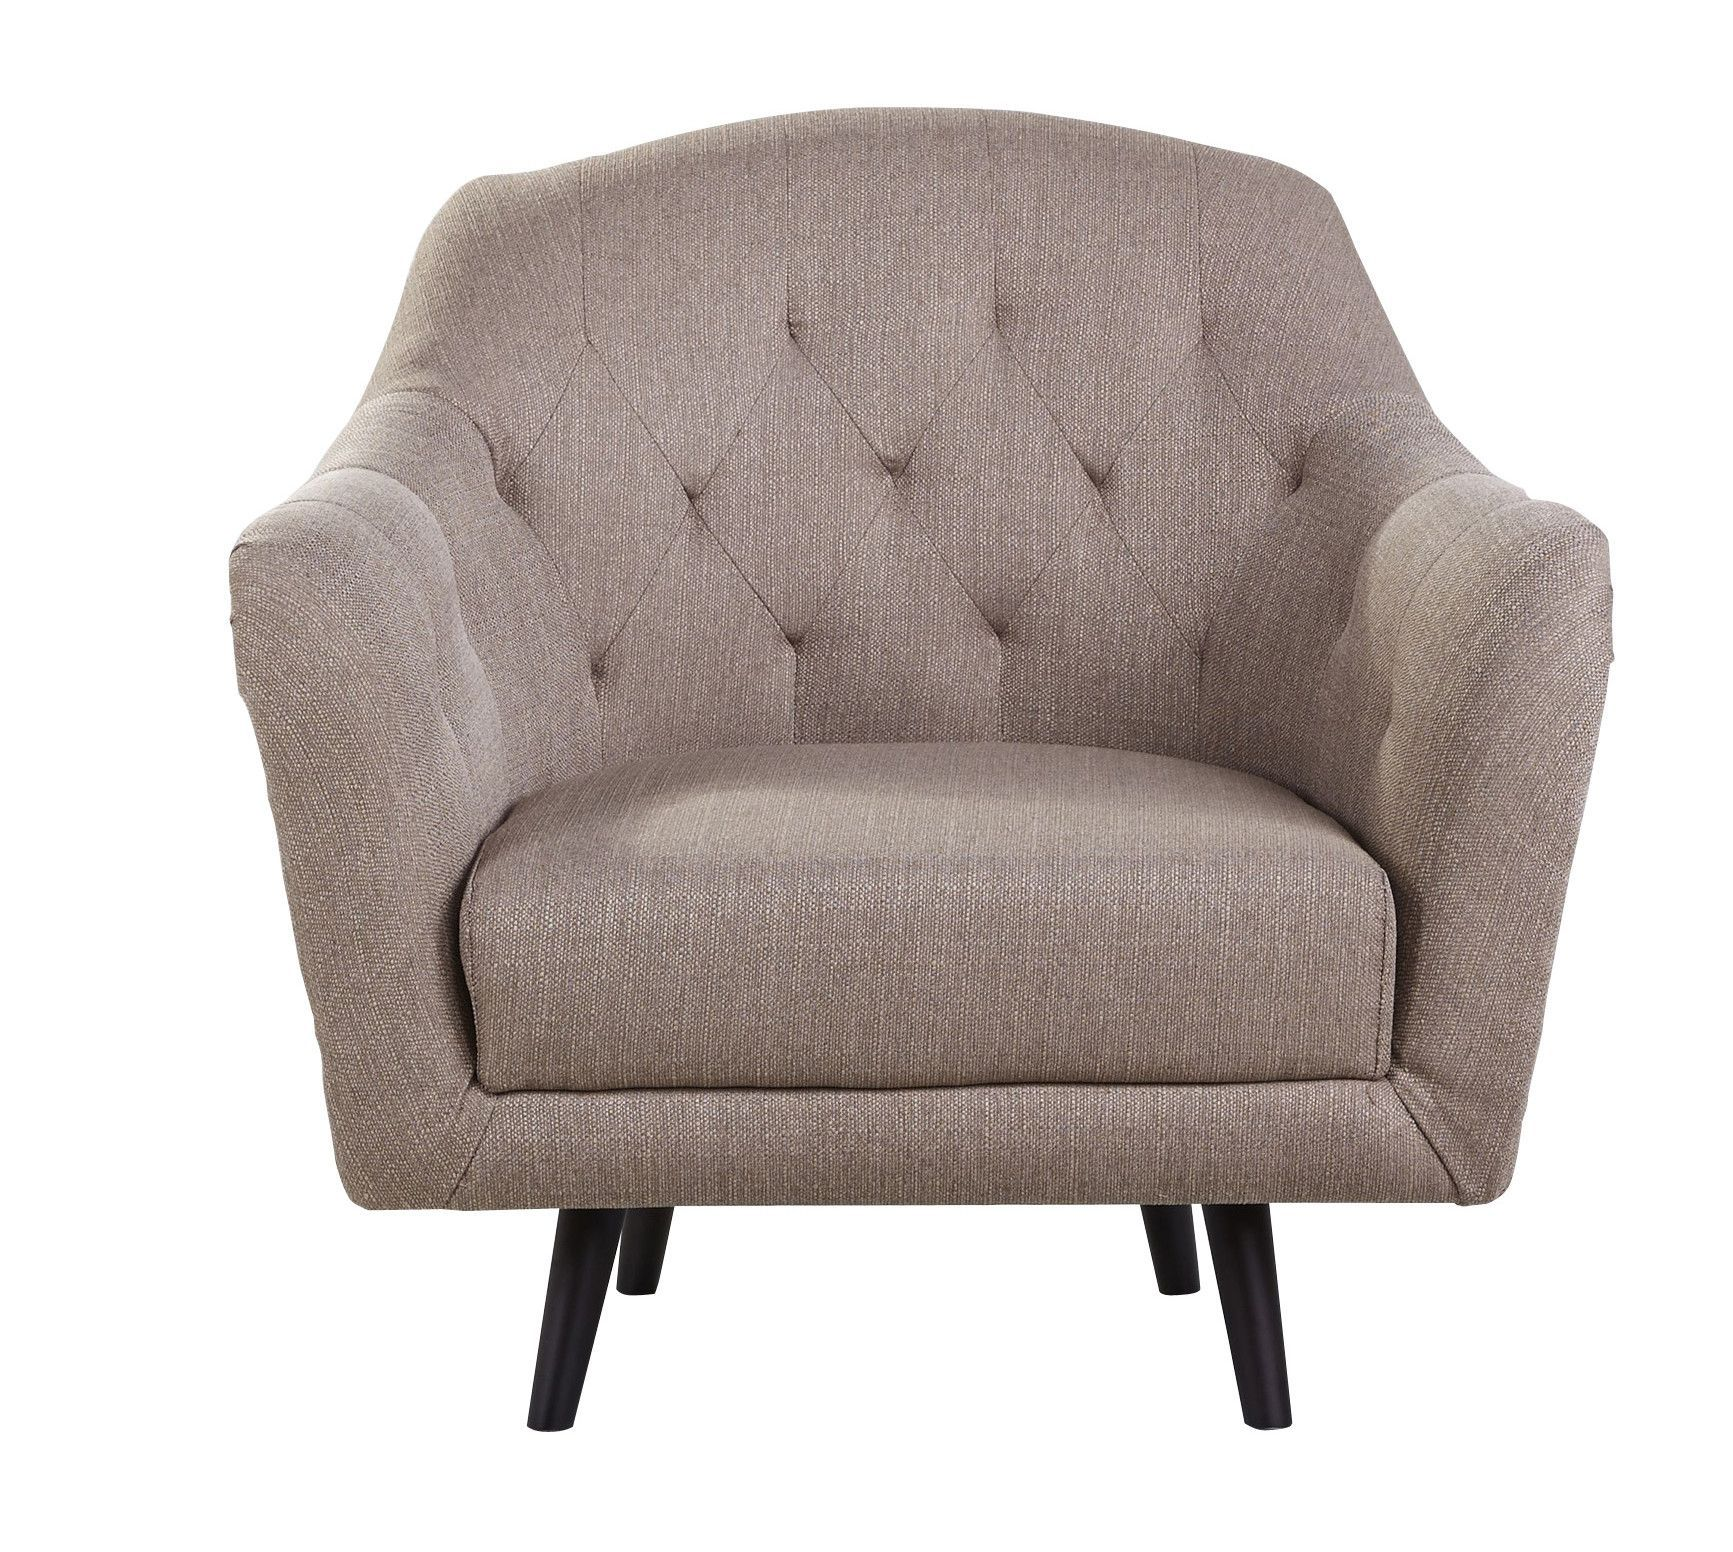 Aurora Armchair | Accent chairs for living room, Fabric ...